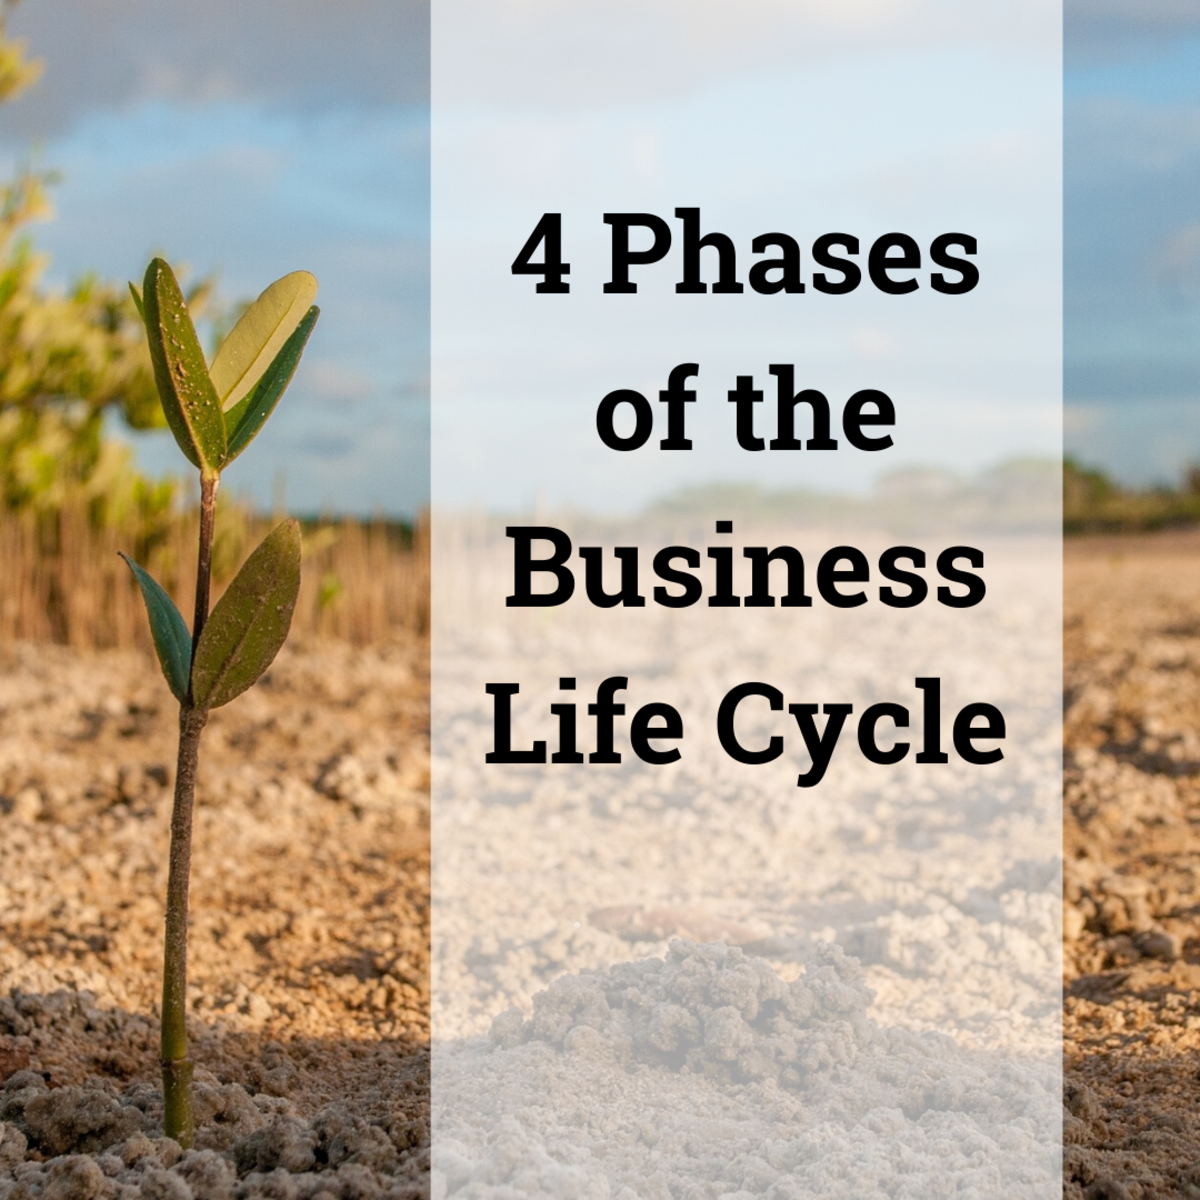 Learn more about the business life cycle: establishment, growth, maturity and post-maturity.